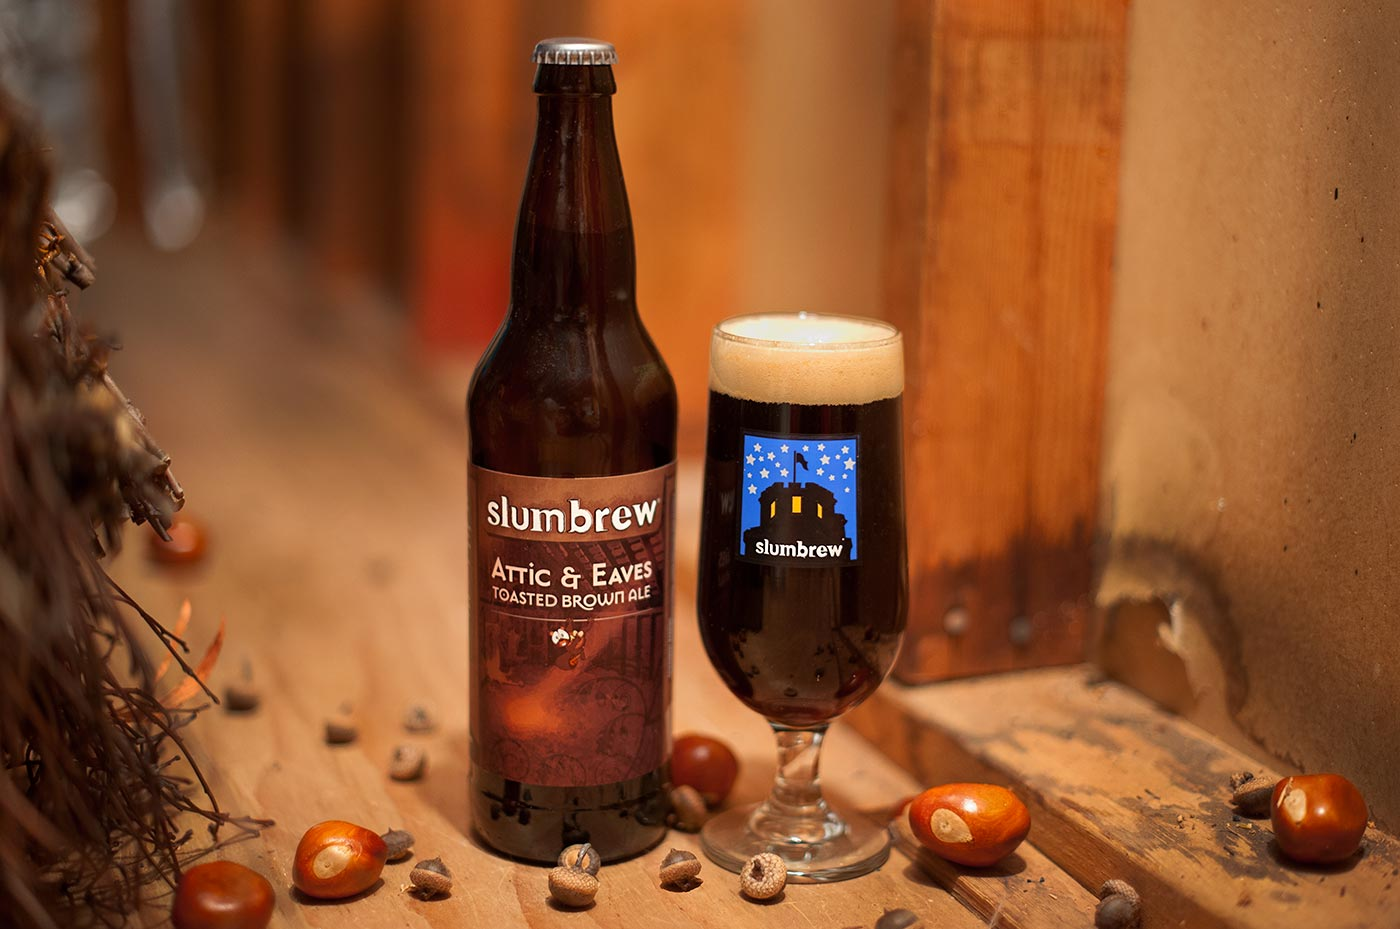 Slumbrew Attic and Eaves 2014